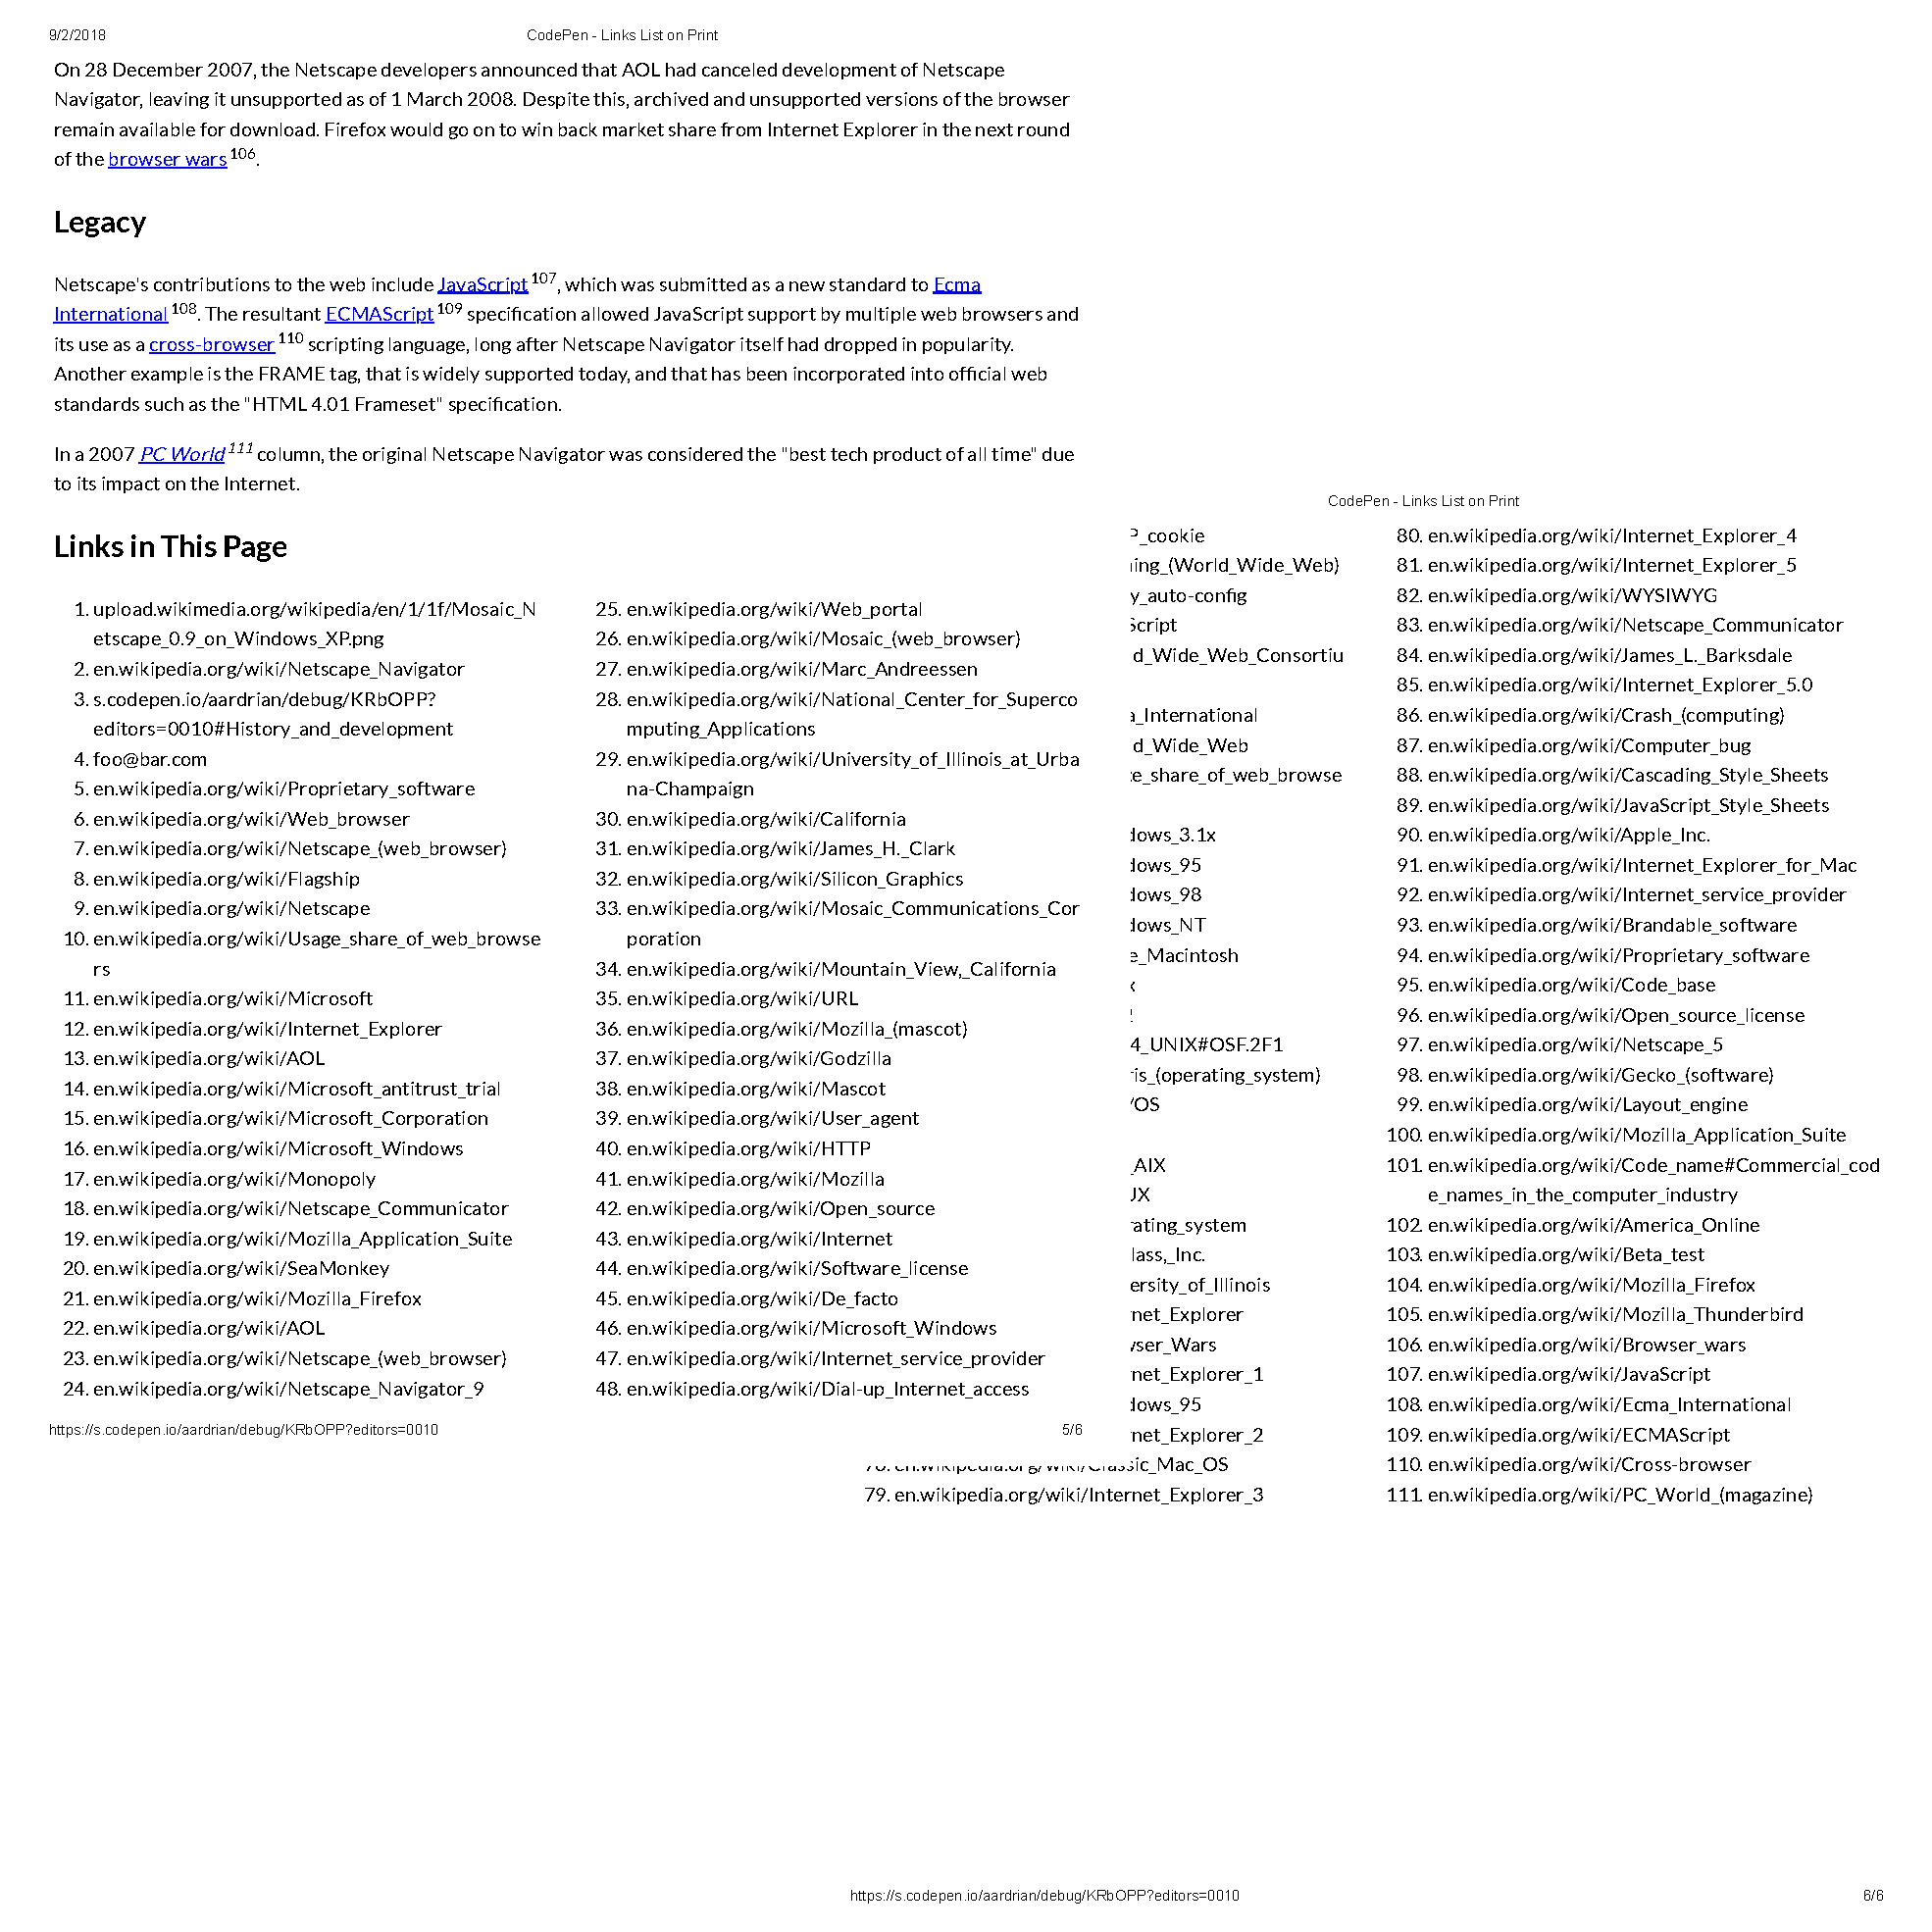 Example of a couple printed pages showing the links list.